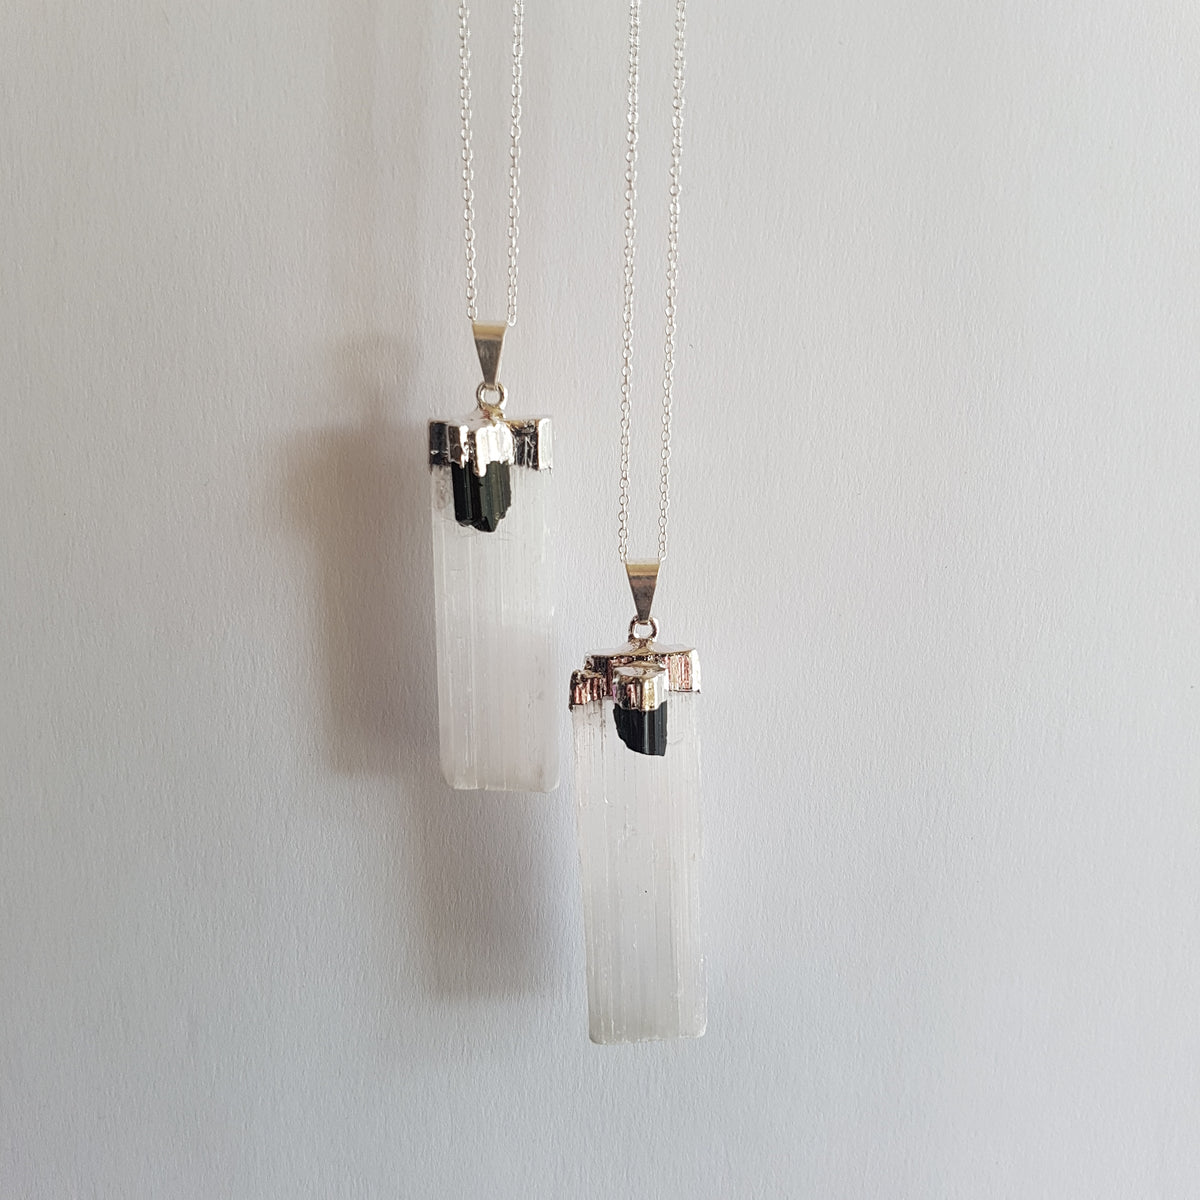 Crystal Jewellery + Accessories - Neat Natural Products NZ